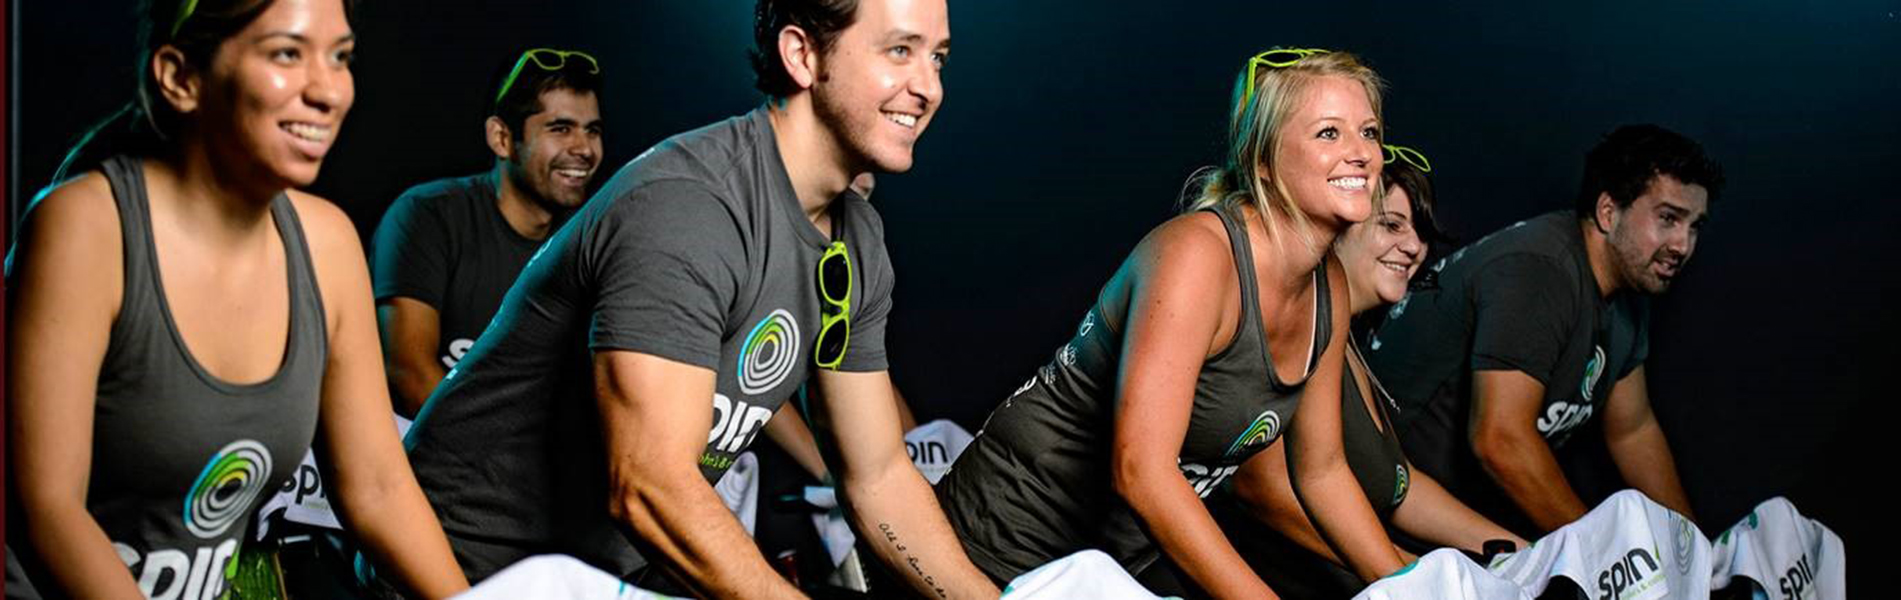 Crohn's & Colitis Foundation launches 2017 indoor cycling ...